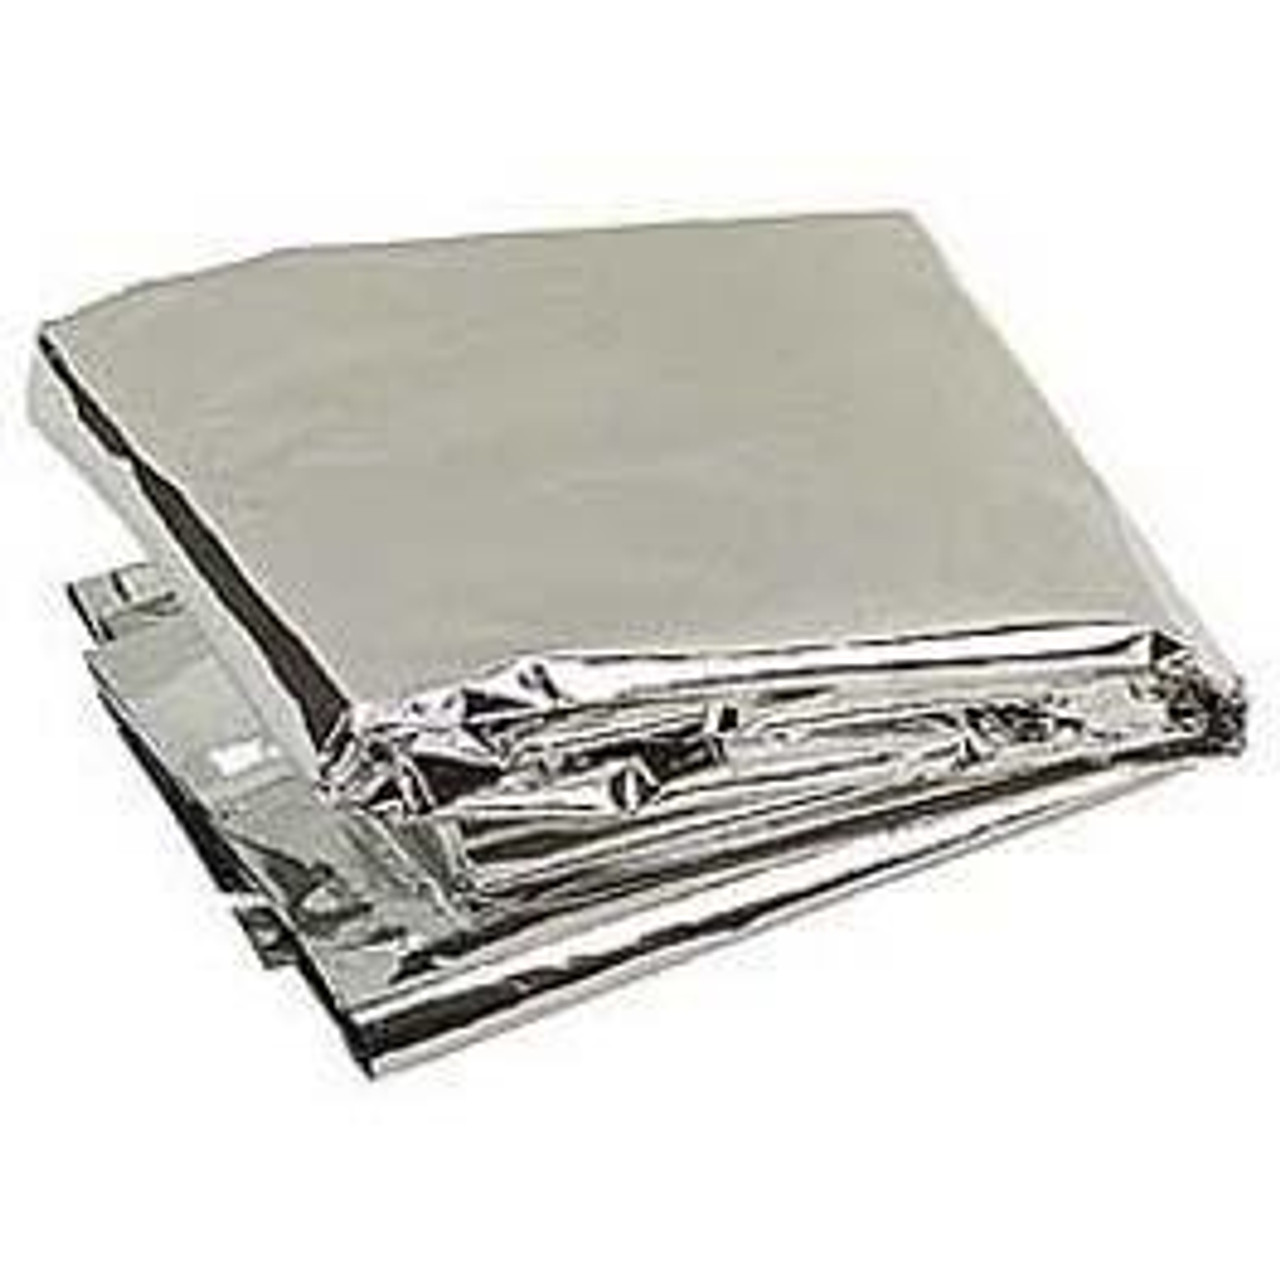 Thermal Emergency Blanket - Silver - 12 Pak